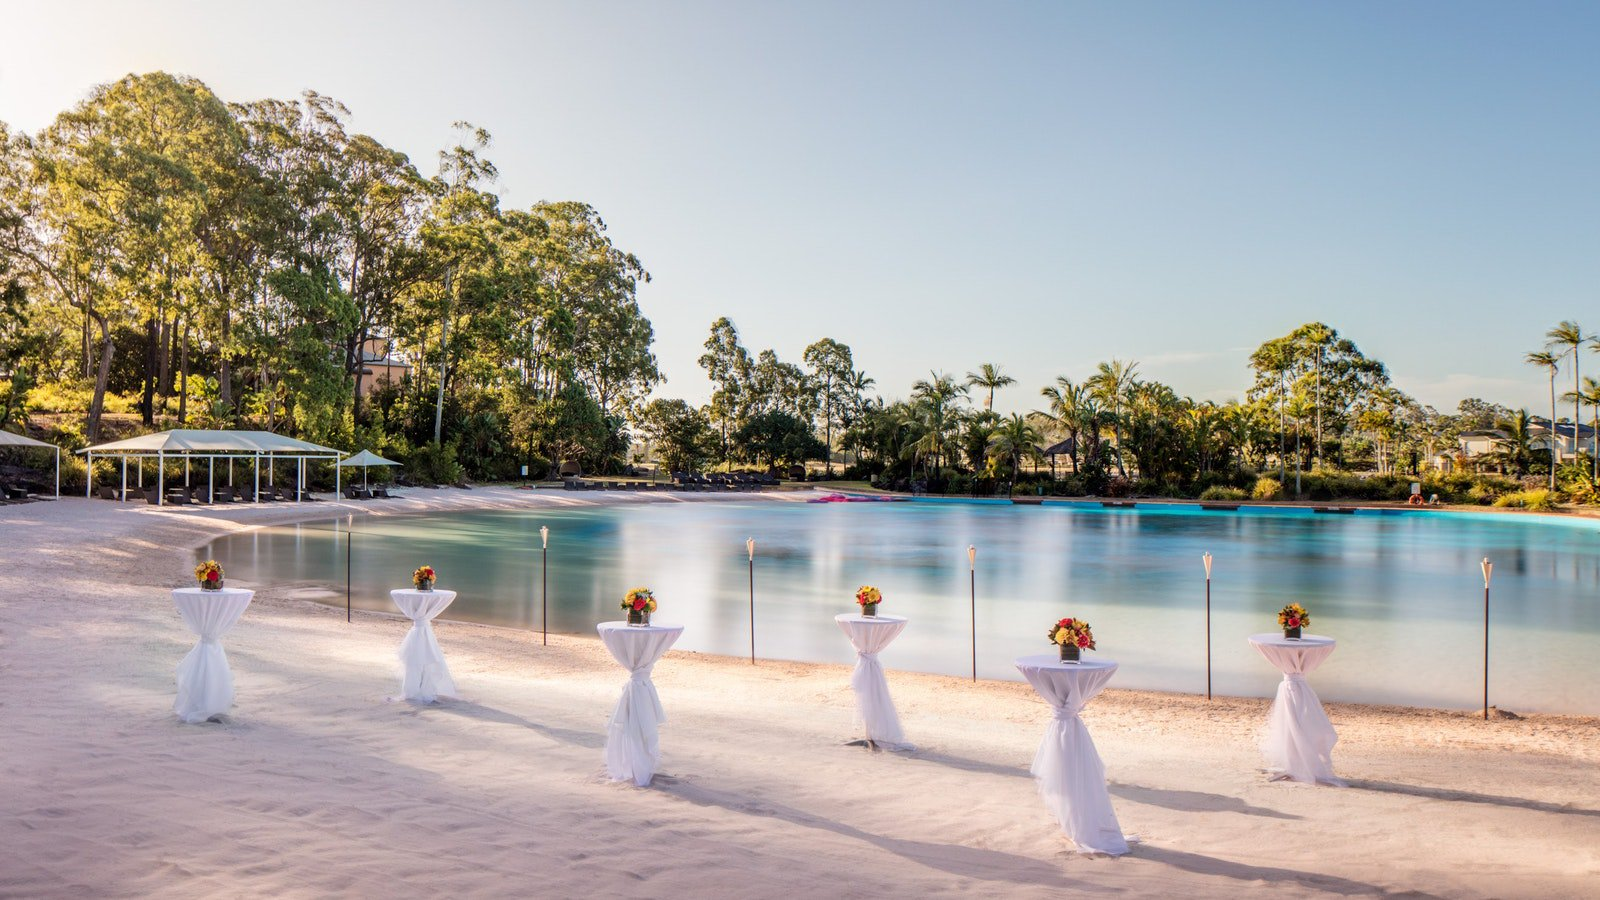 Lagoon Beach, Meetings and Events